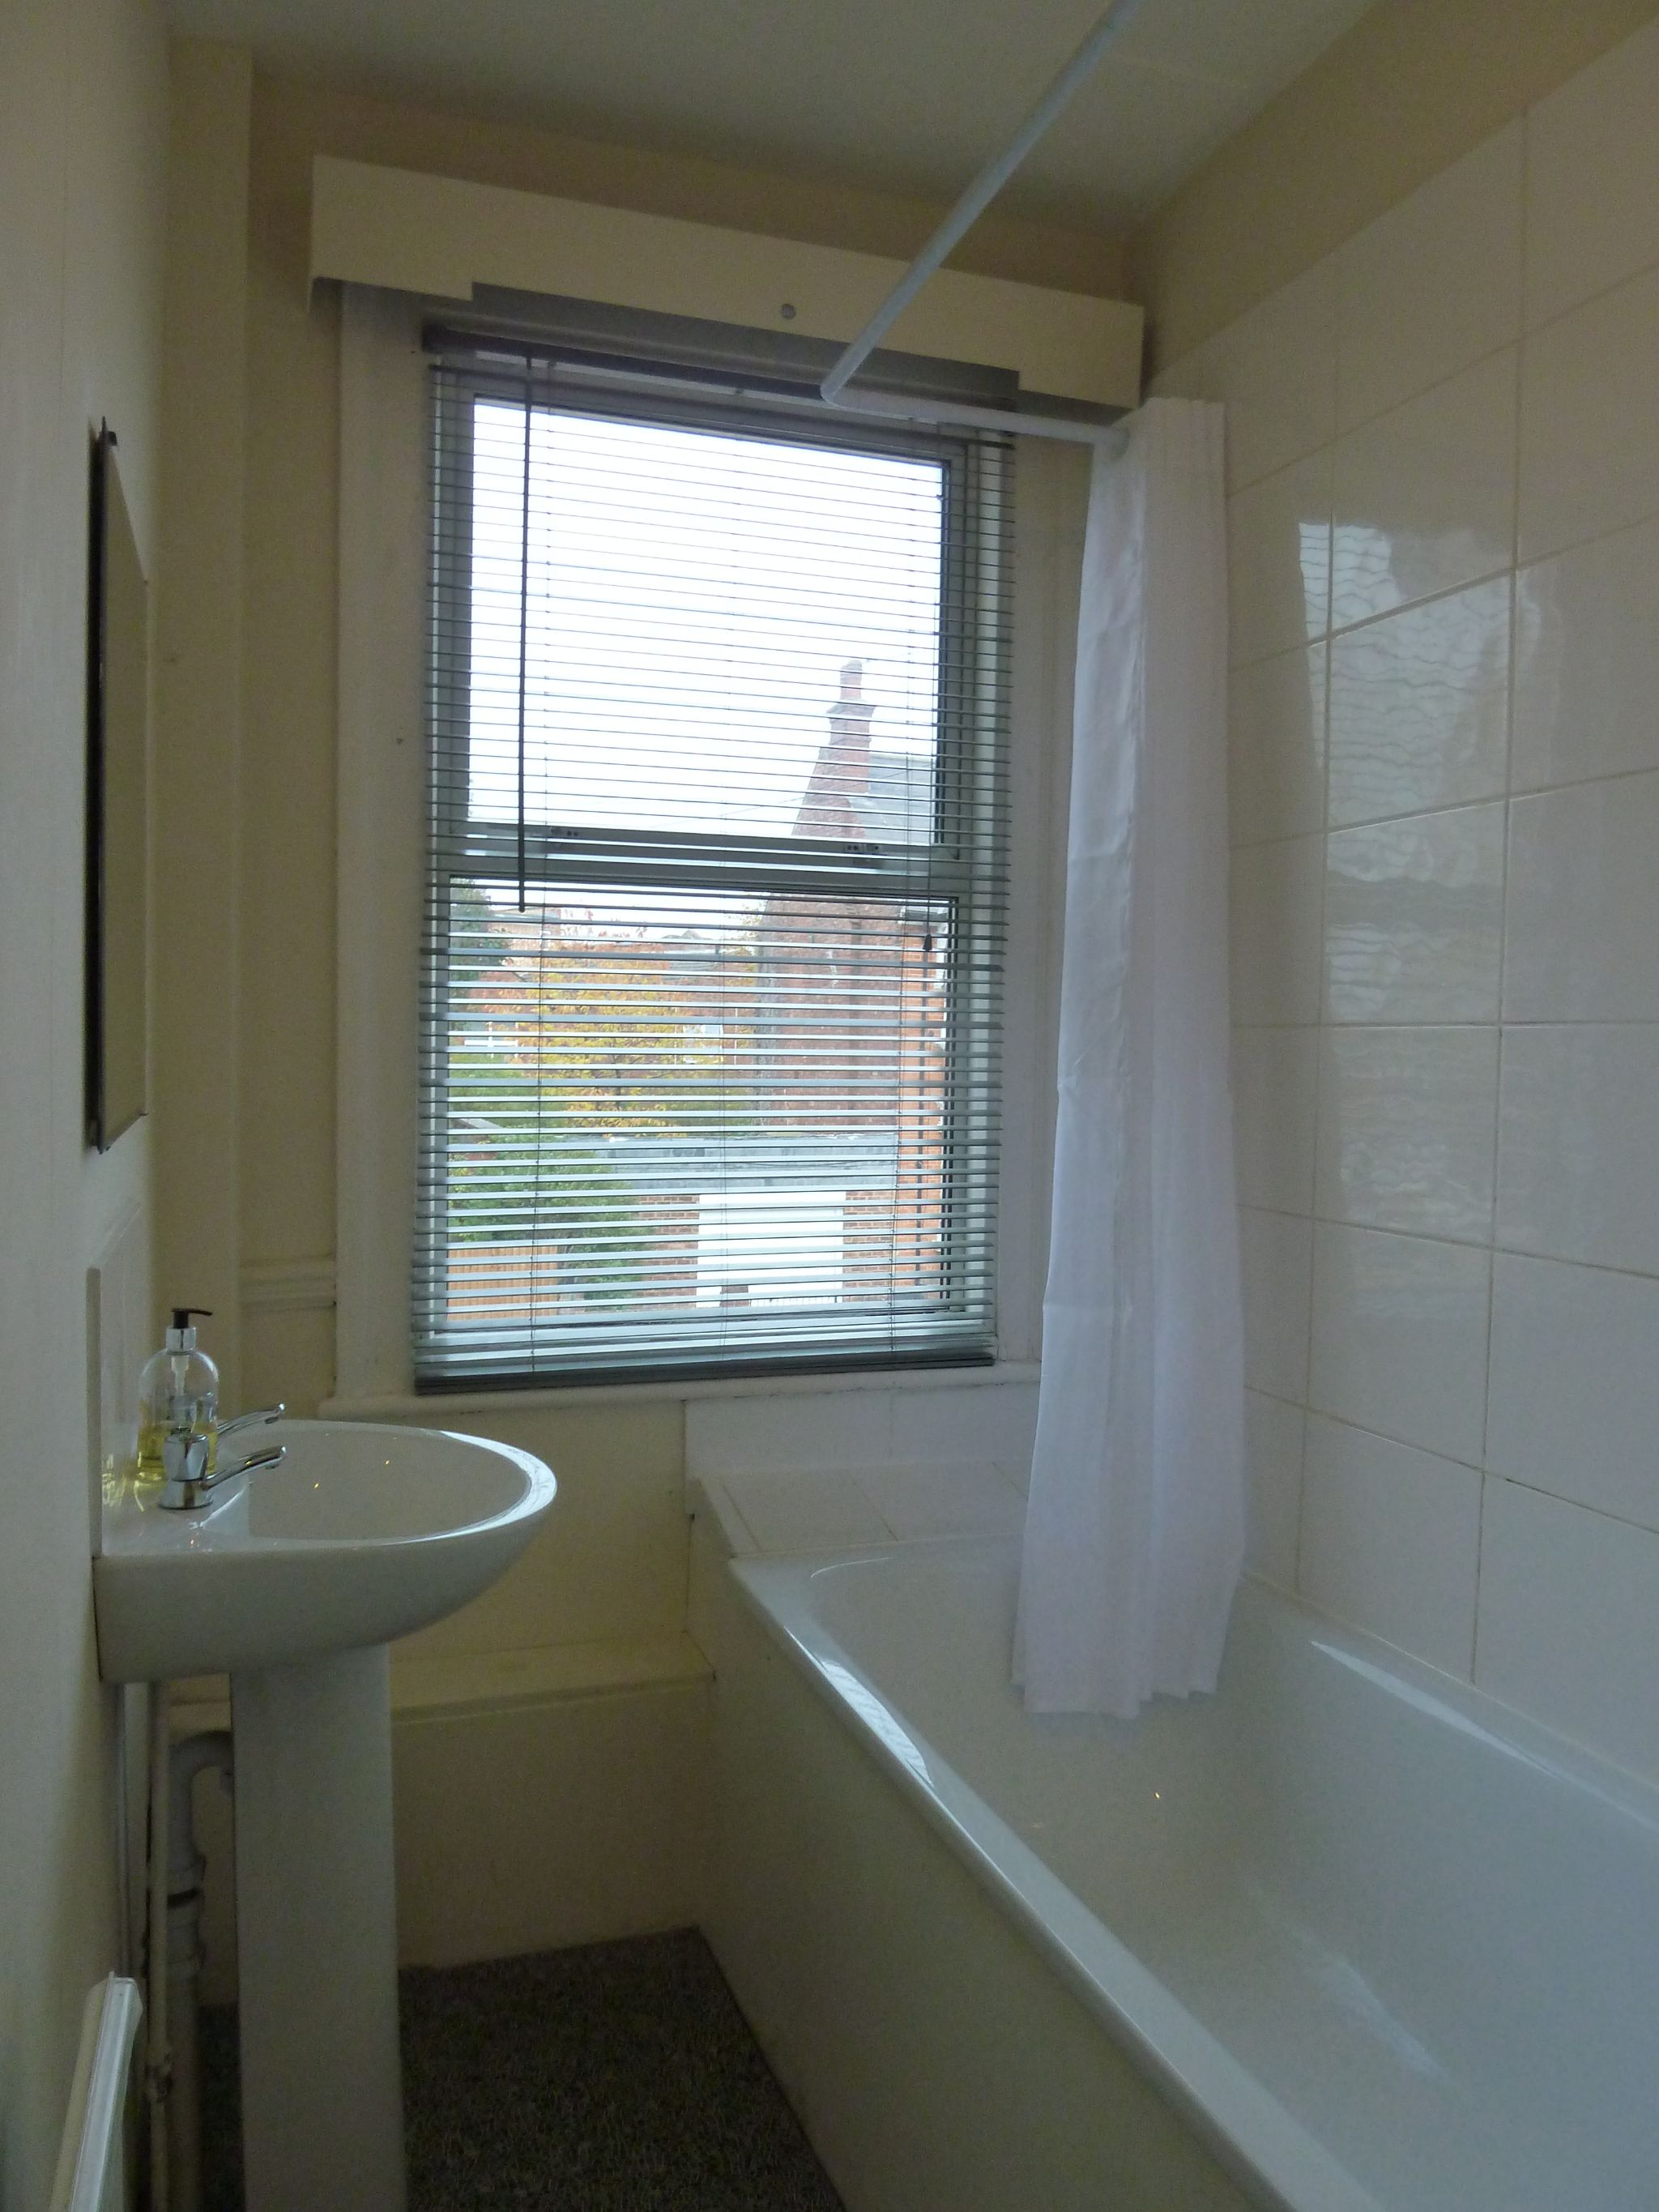 1 bedroom shared house To Let in London - Bathroom